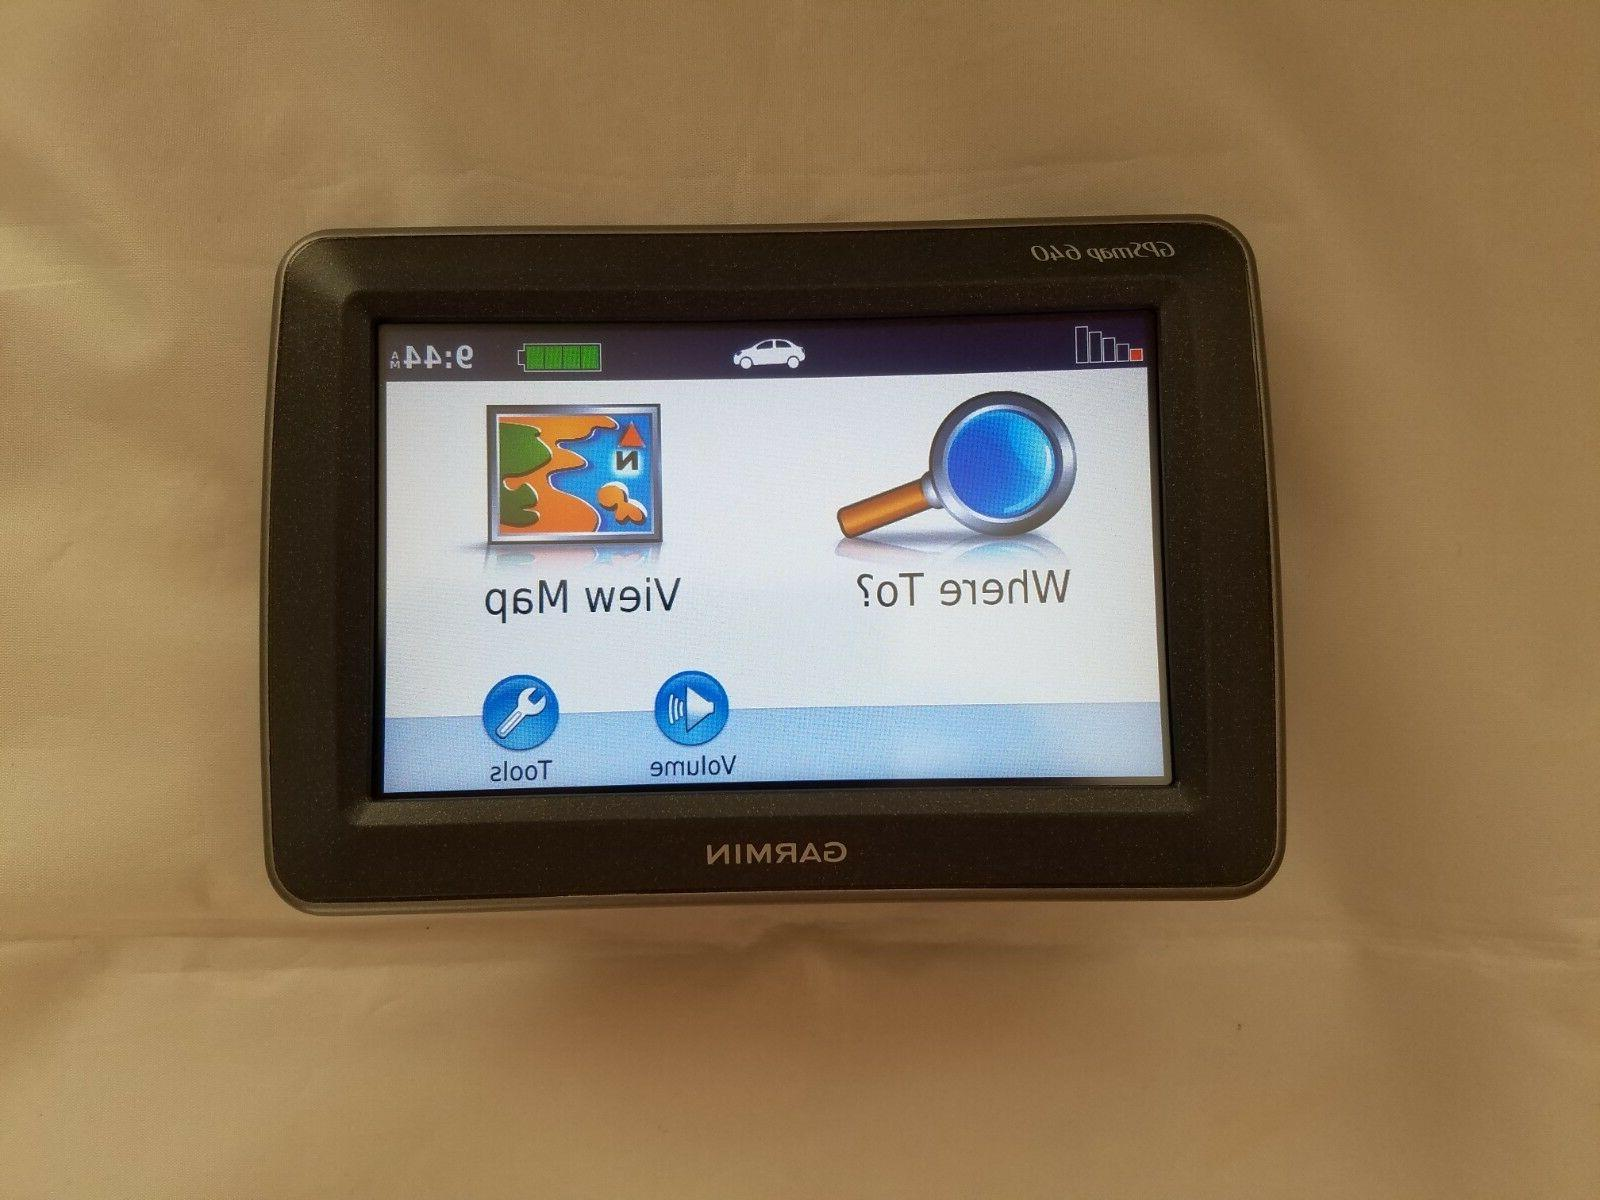 gpsmap 640 marine and automotive touchscreen gps